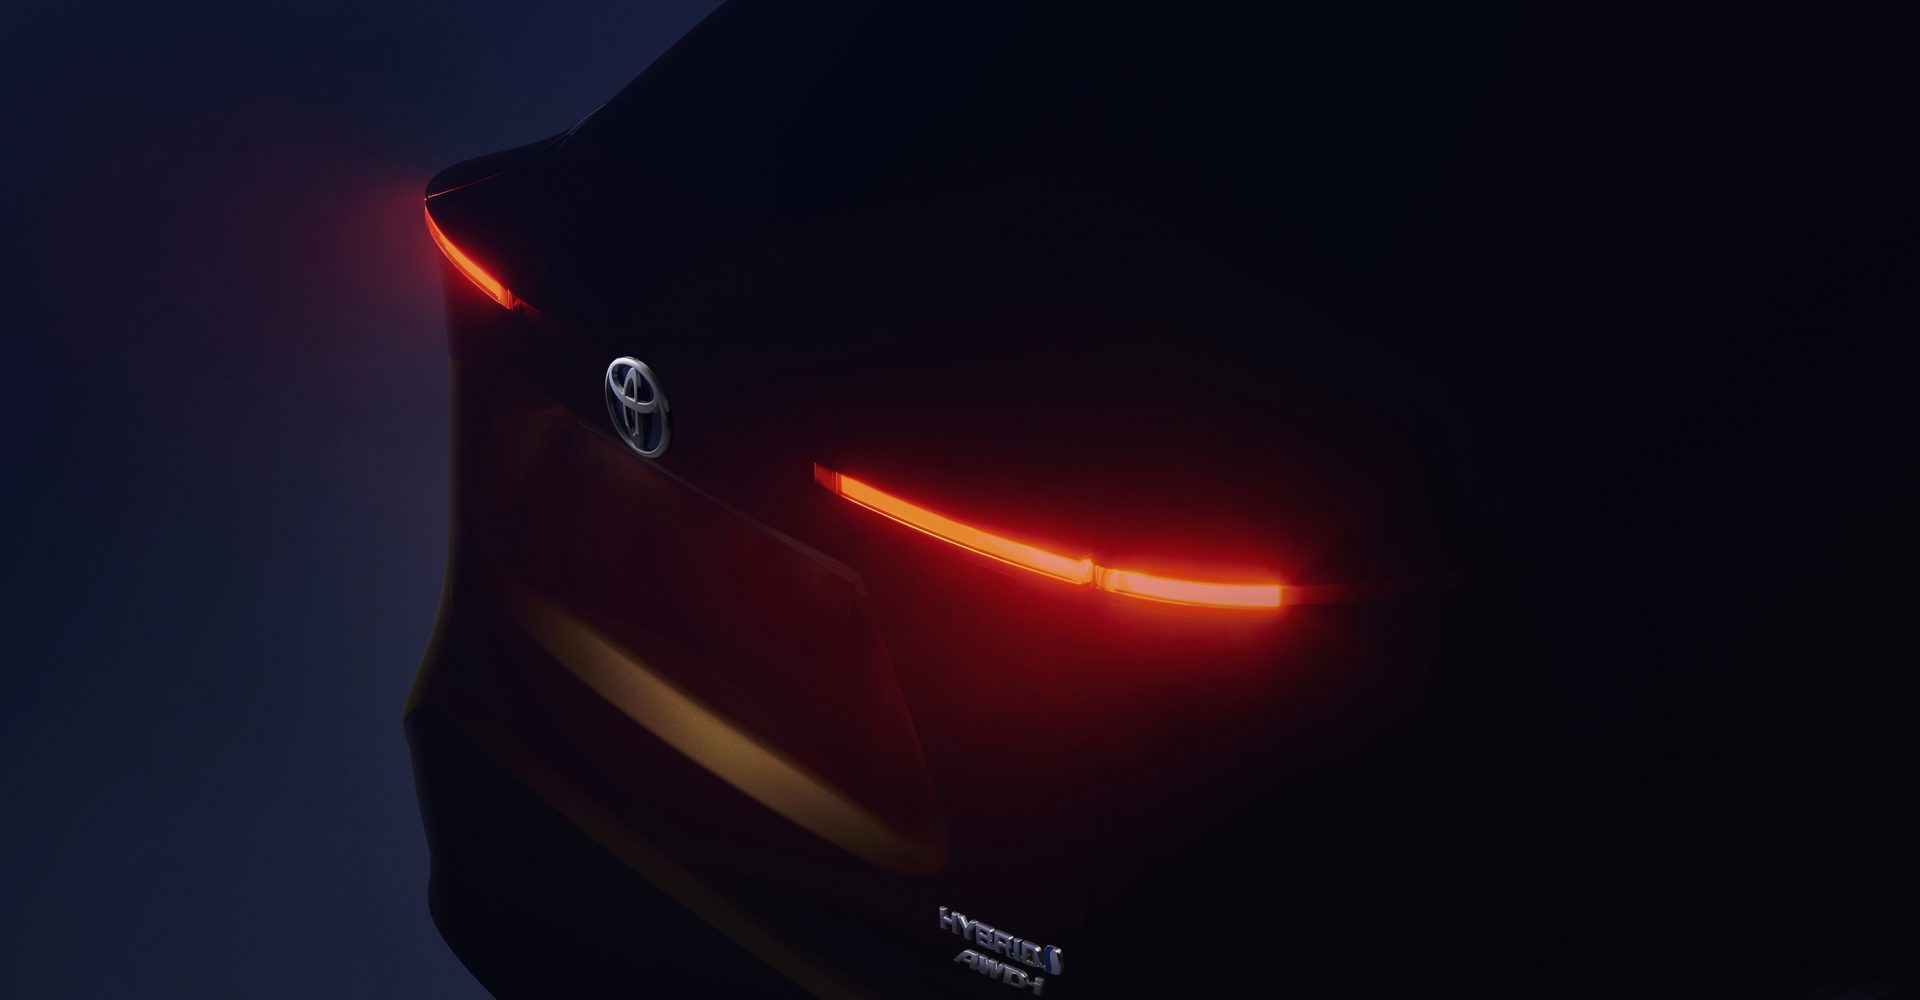 Toyota teases all-wheel-drive Yaris-based crossover